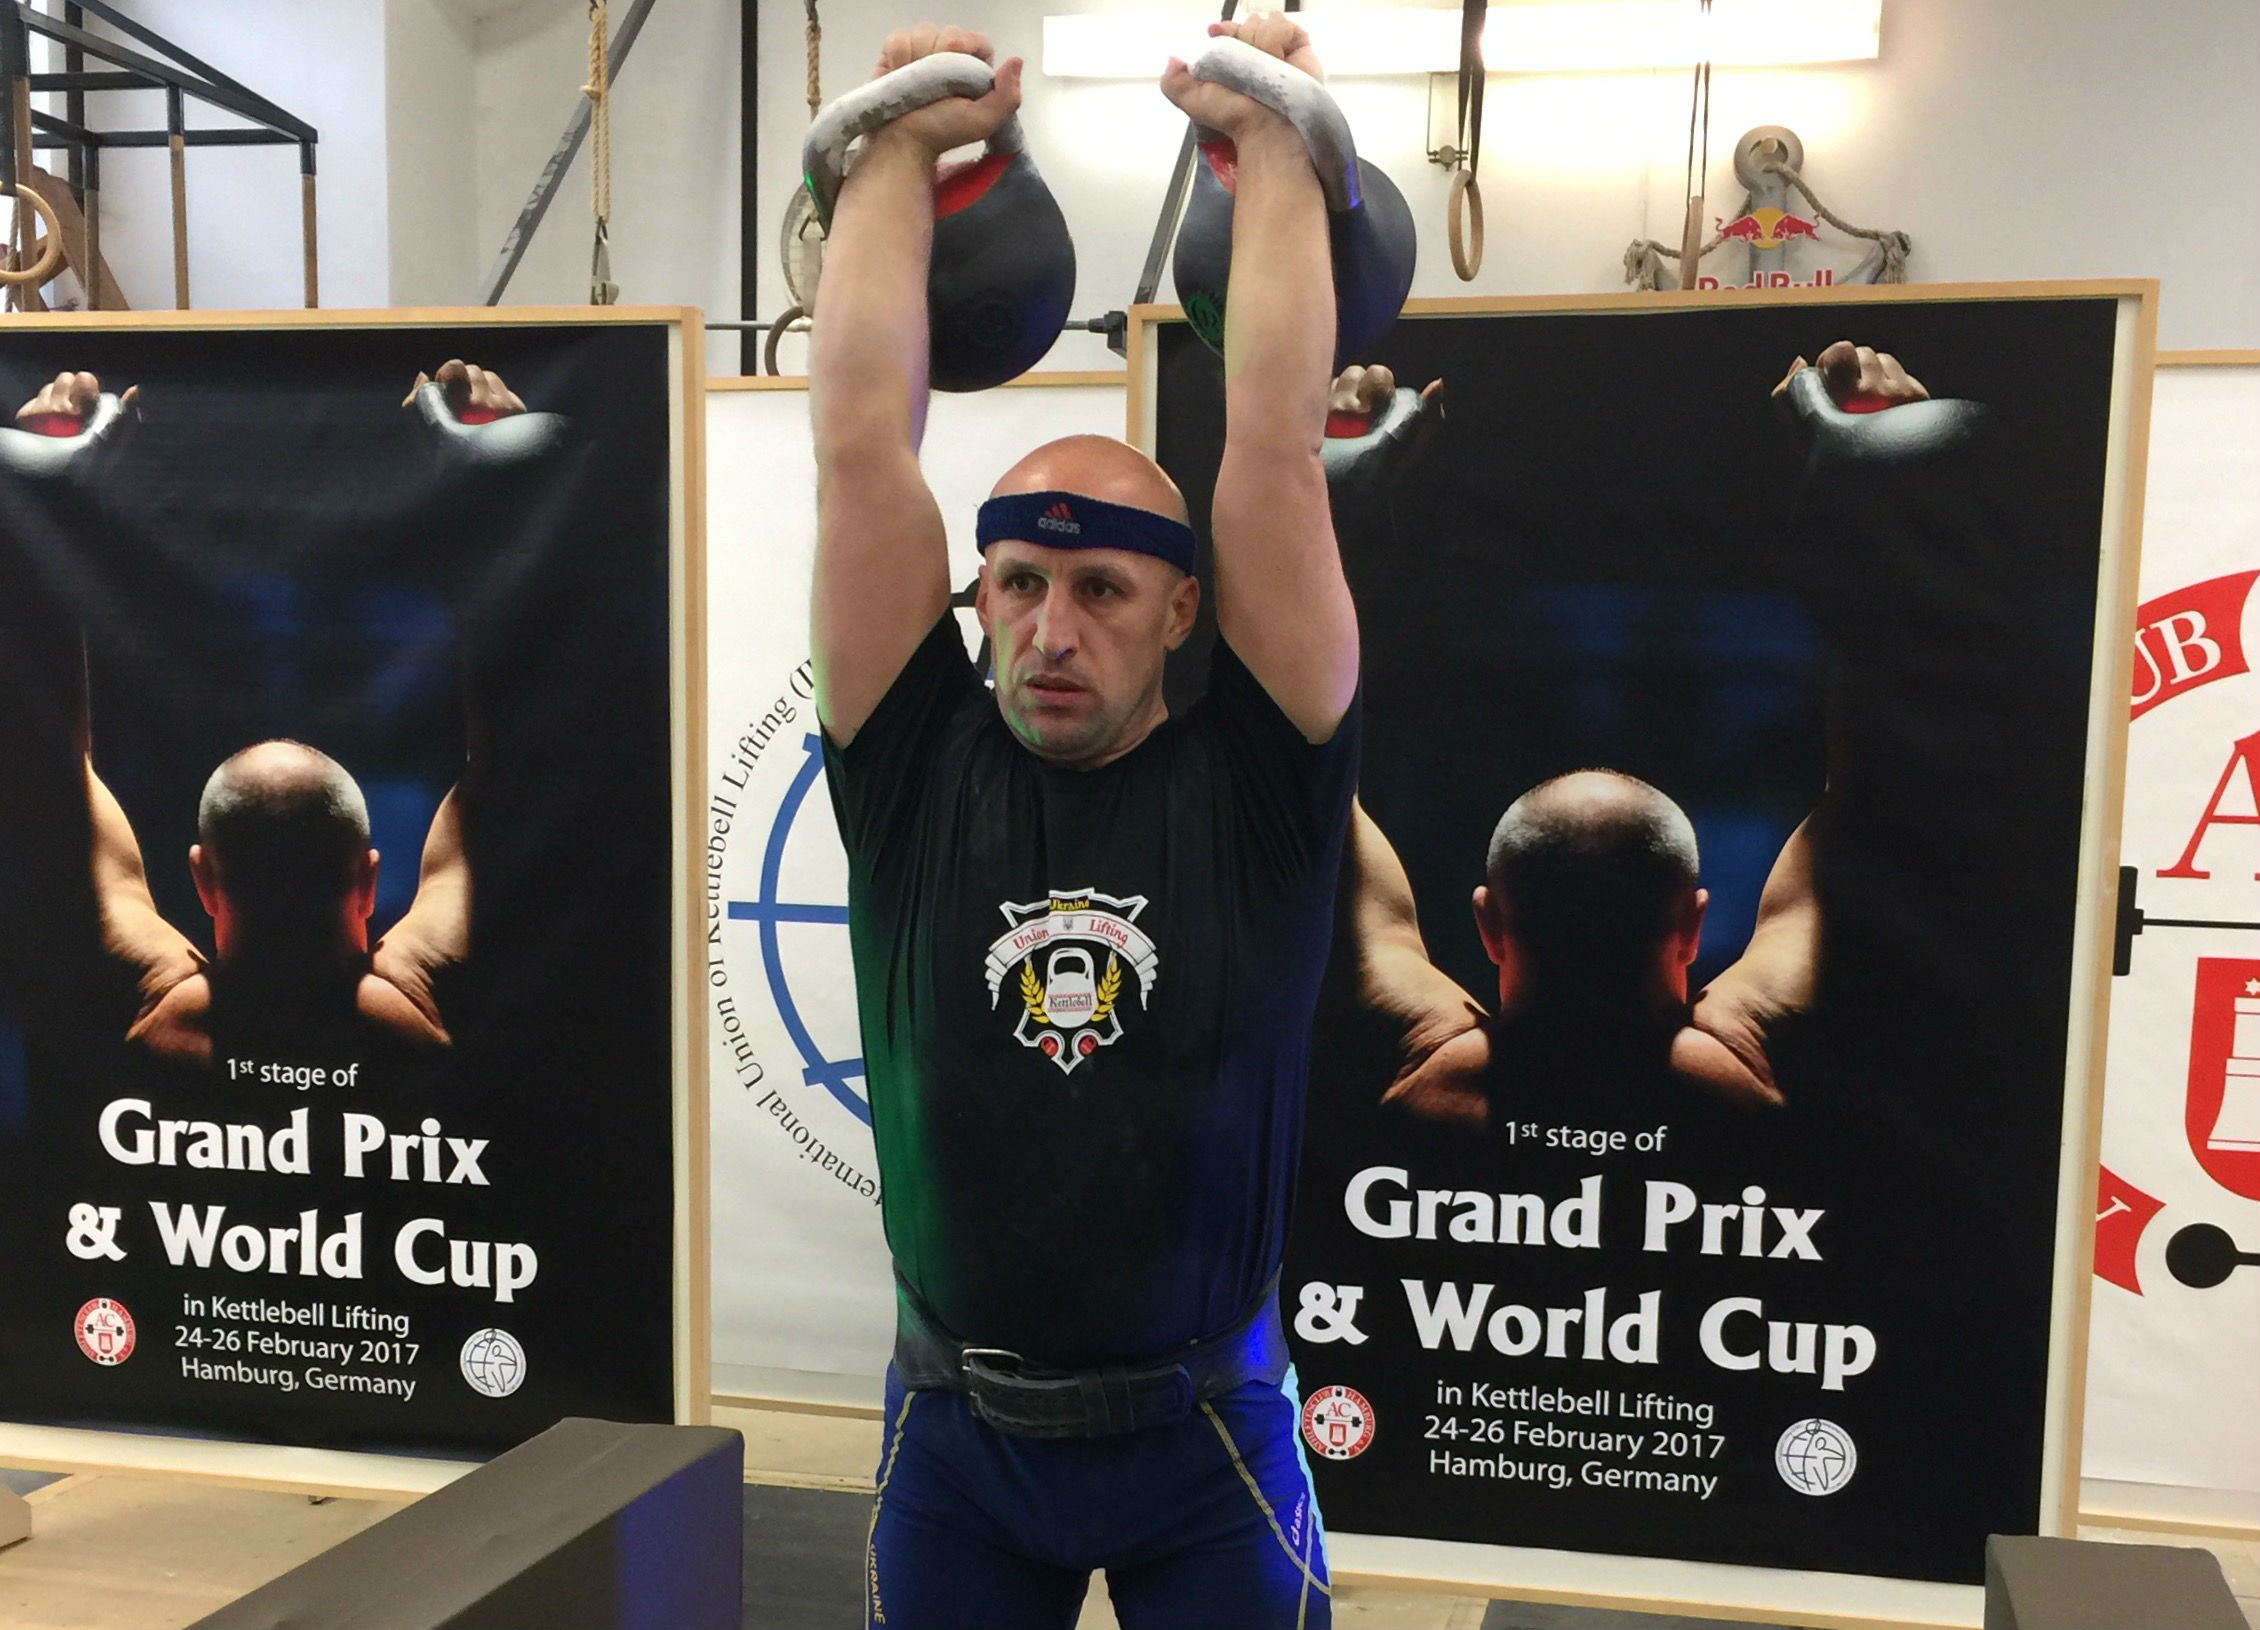 kettlebell_worldcup-2017_germany_berbenchuk